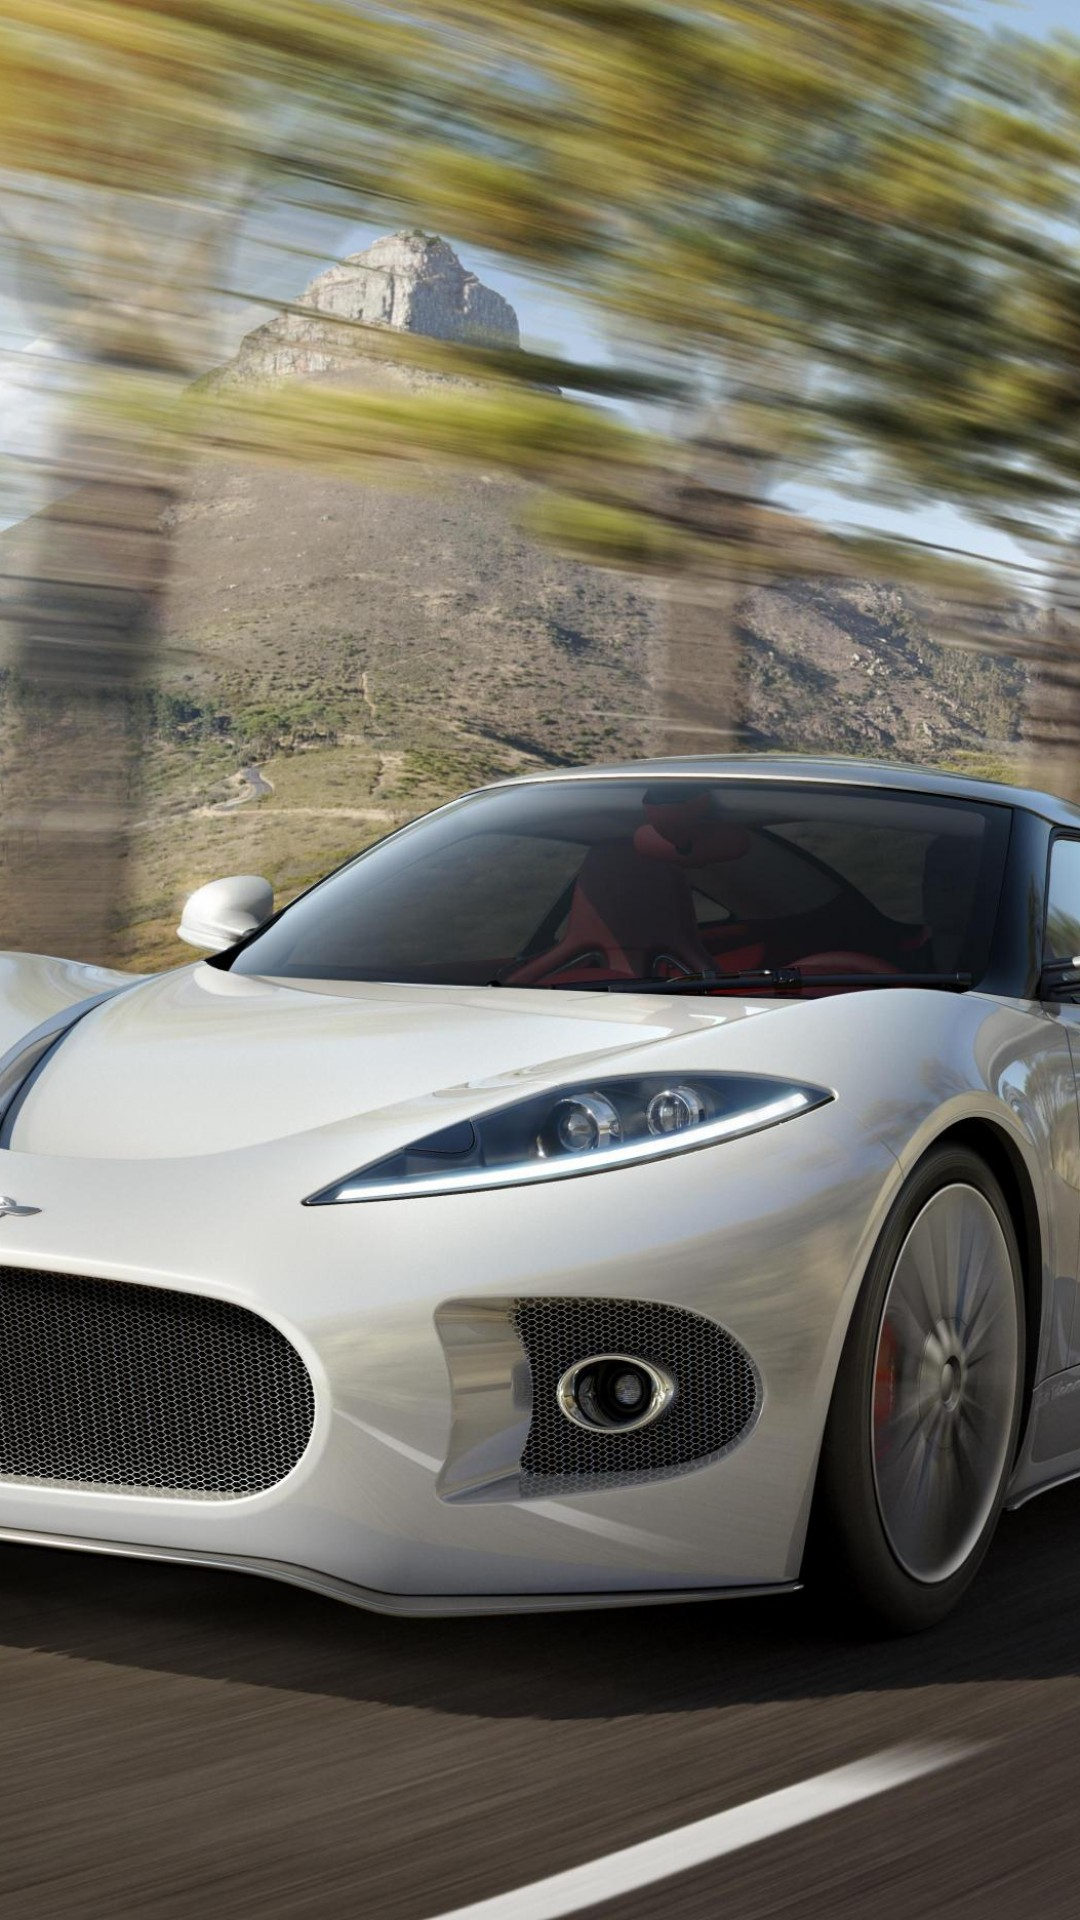 Mitsubishi Electric Car >> Wallpaper Spyker B6 Venator, concept, Spyker Cars, luxury cars, supercar, sports car, speed ...